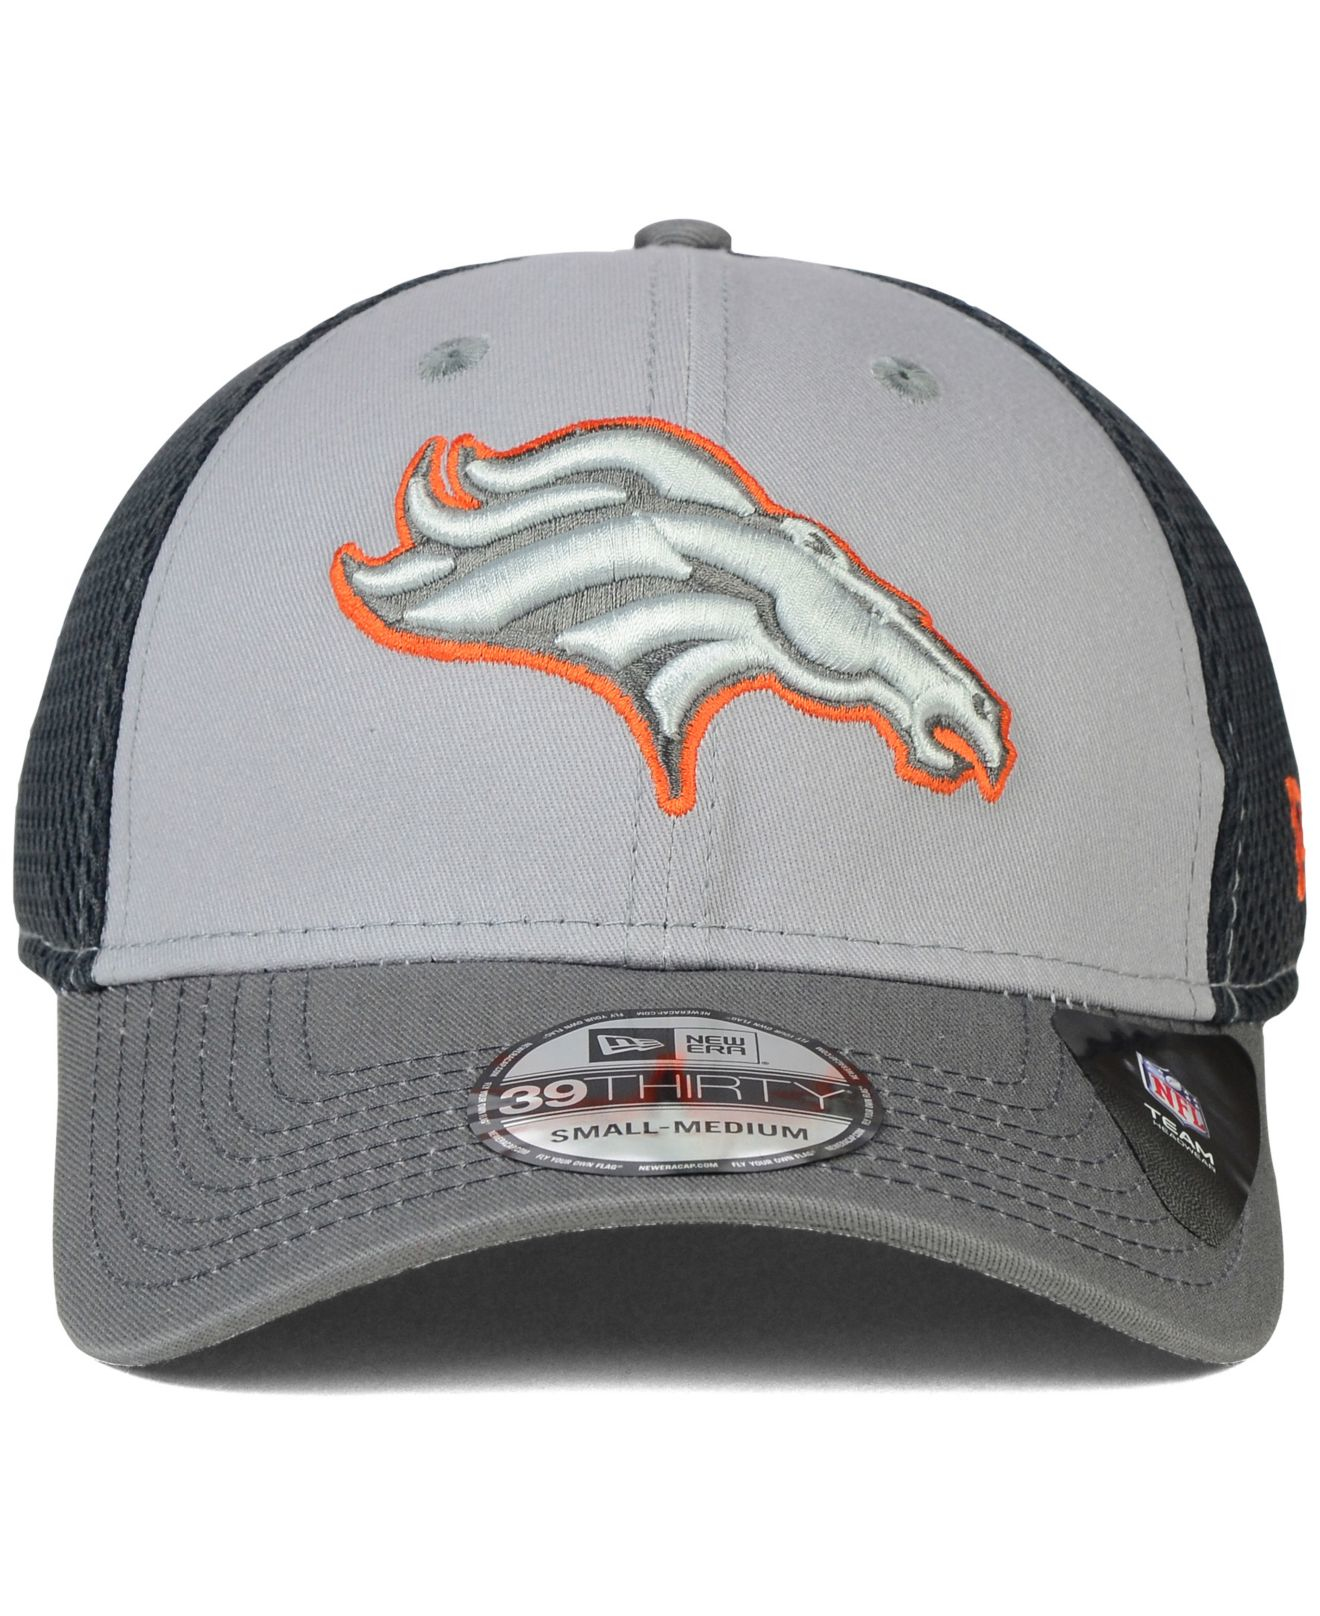 b8d75bcc Lyst - KTZ Denver Broncos Neo Flex 39thirty Cap in Gray for Men